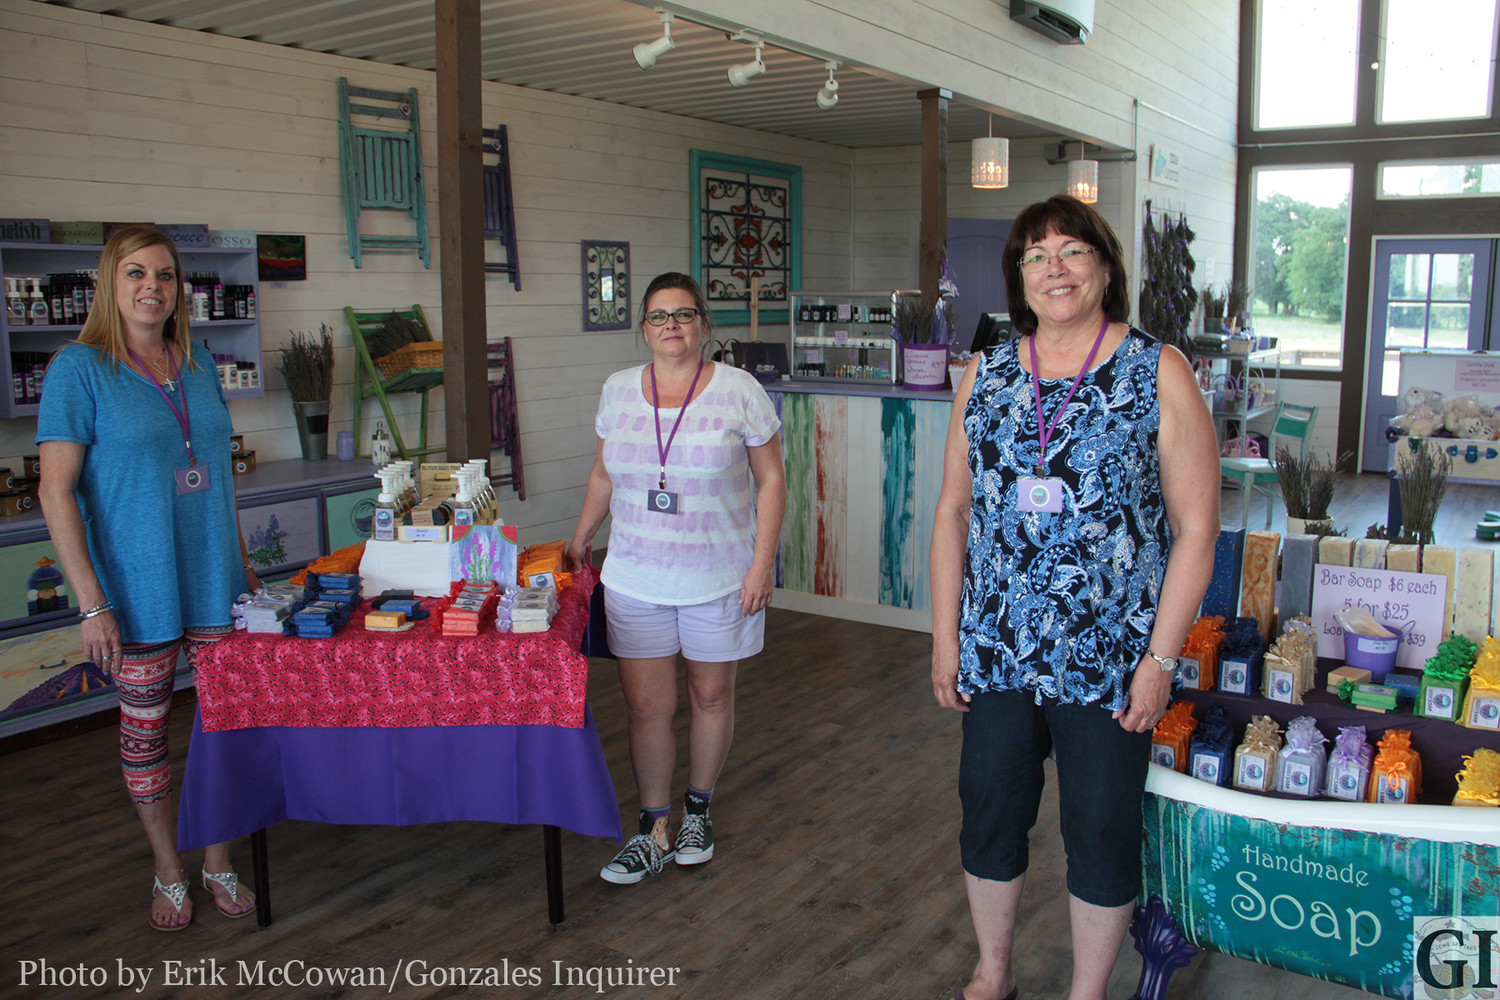 From left, Tina Rader, Princess Ferrell, and owner Erin Leavitt take a stroll around the new establishment that has everything lavender from soaps and shampoo to powders and beard oil.